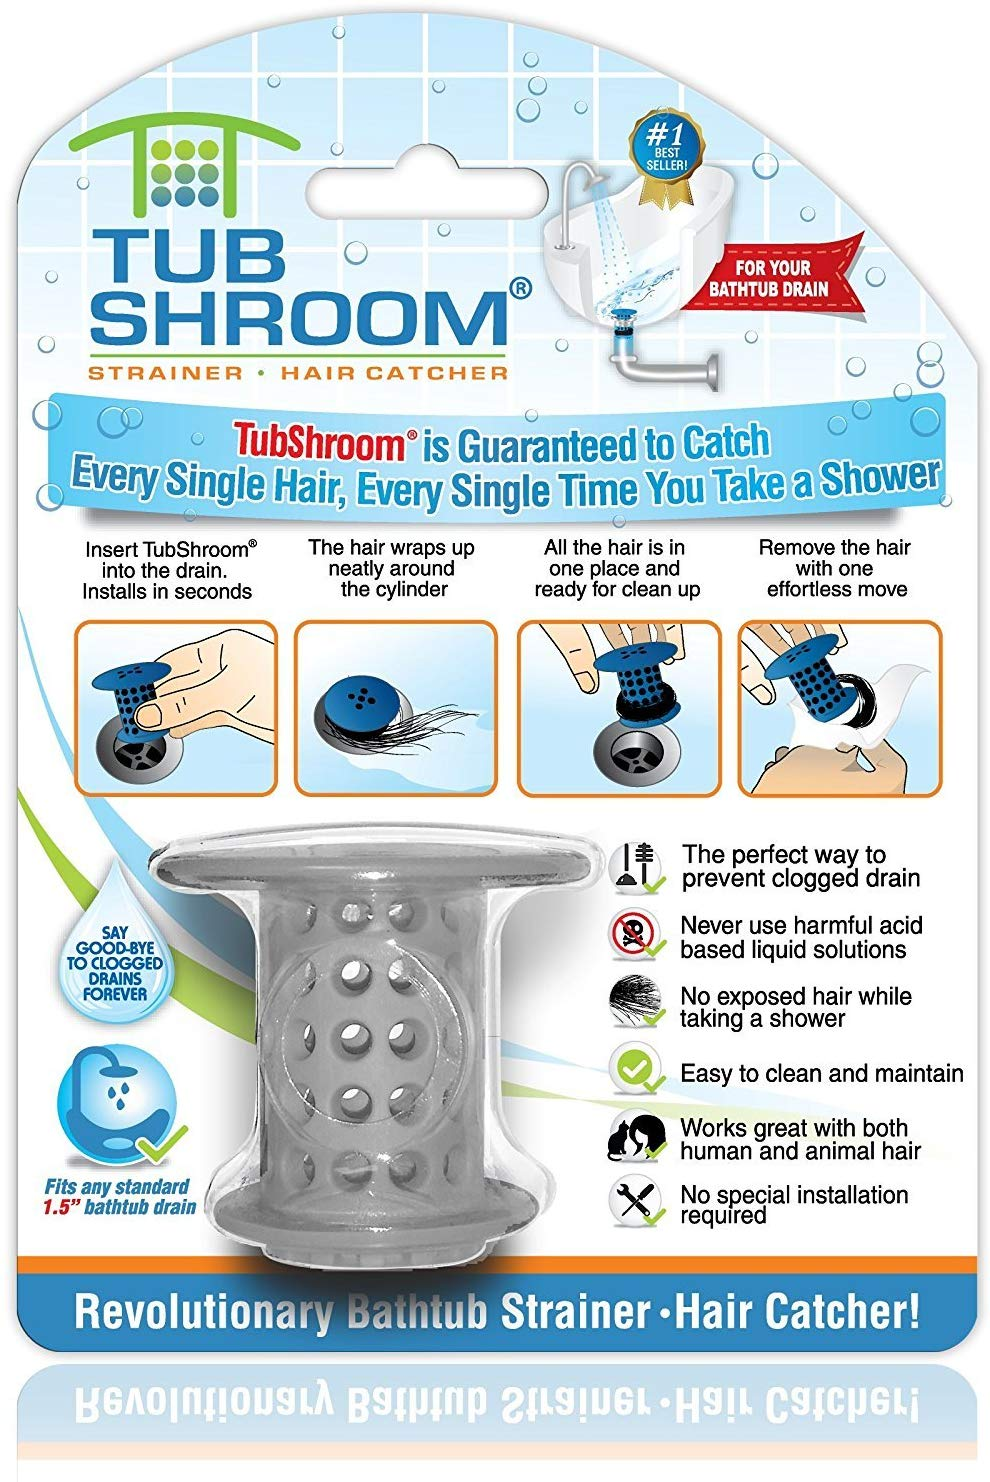 https://www.amazon.com/TubShroom-Revolutionary-Protector-Catcher-Strainer/dp/B01M0H7YC2/ref=as_li_ss_tl?keywords=tubscroom&qid=1556932601&s=gateway&sr=8-1-spons&psc=1&linkCode=ll1&tag=usatgallery-20&linkId=698002ff70f822a4890f6c6365e3a969&language=en_US